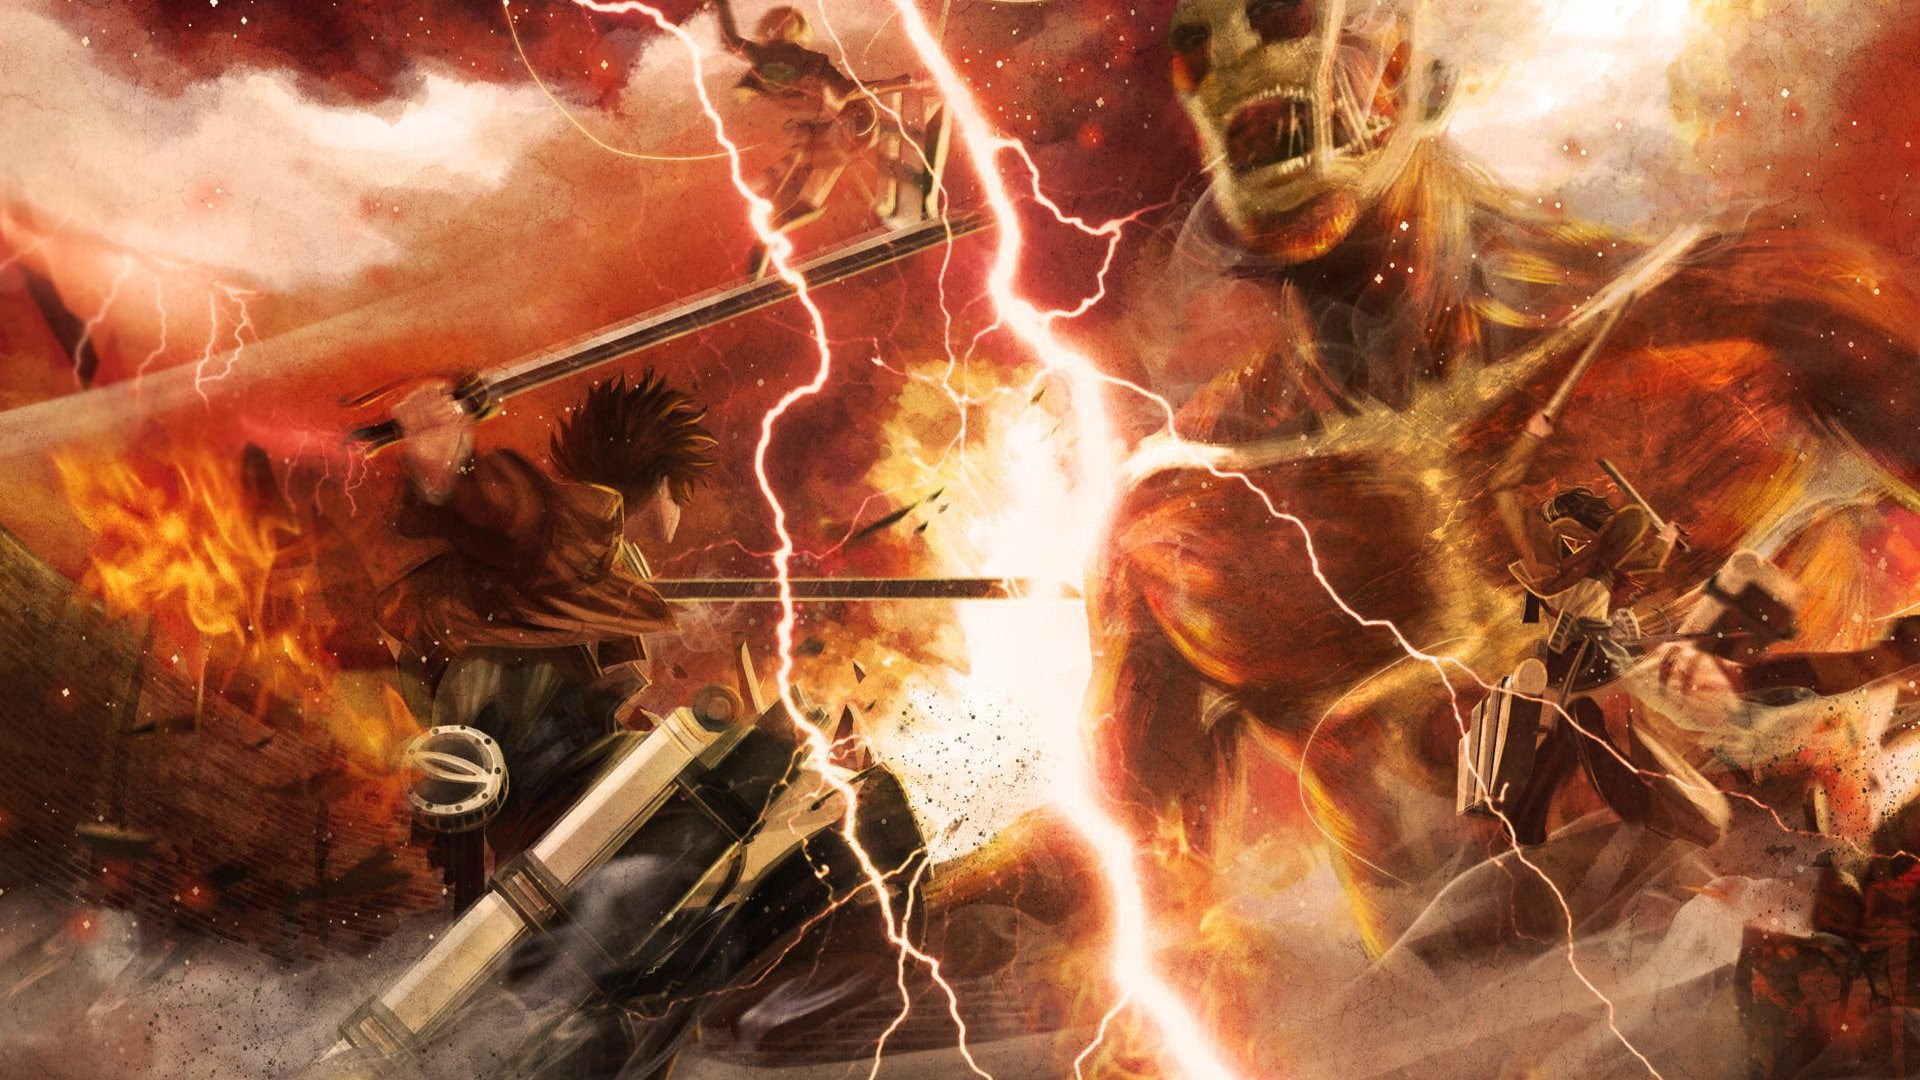 Animated Wallpaper Attack On Titan Nice